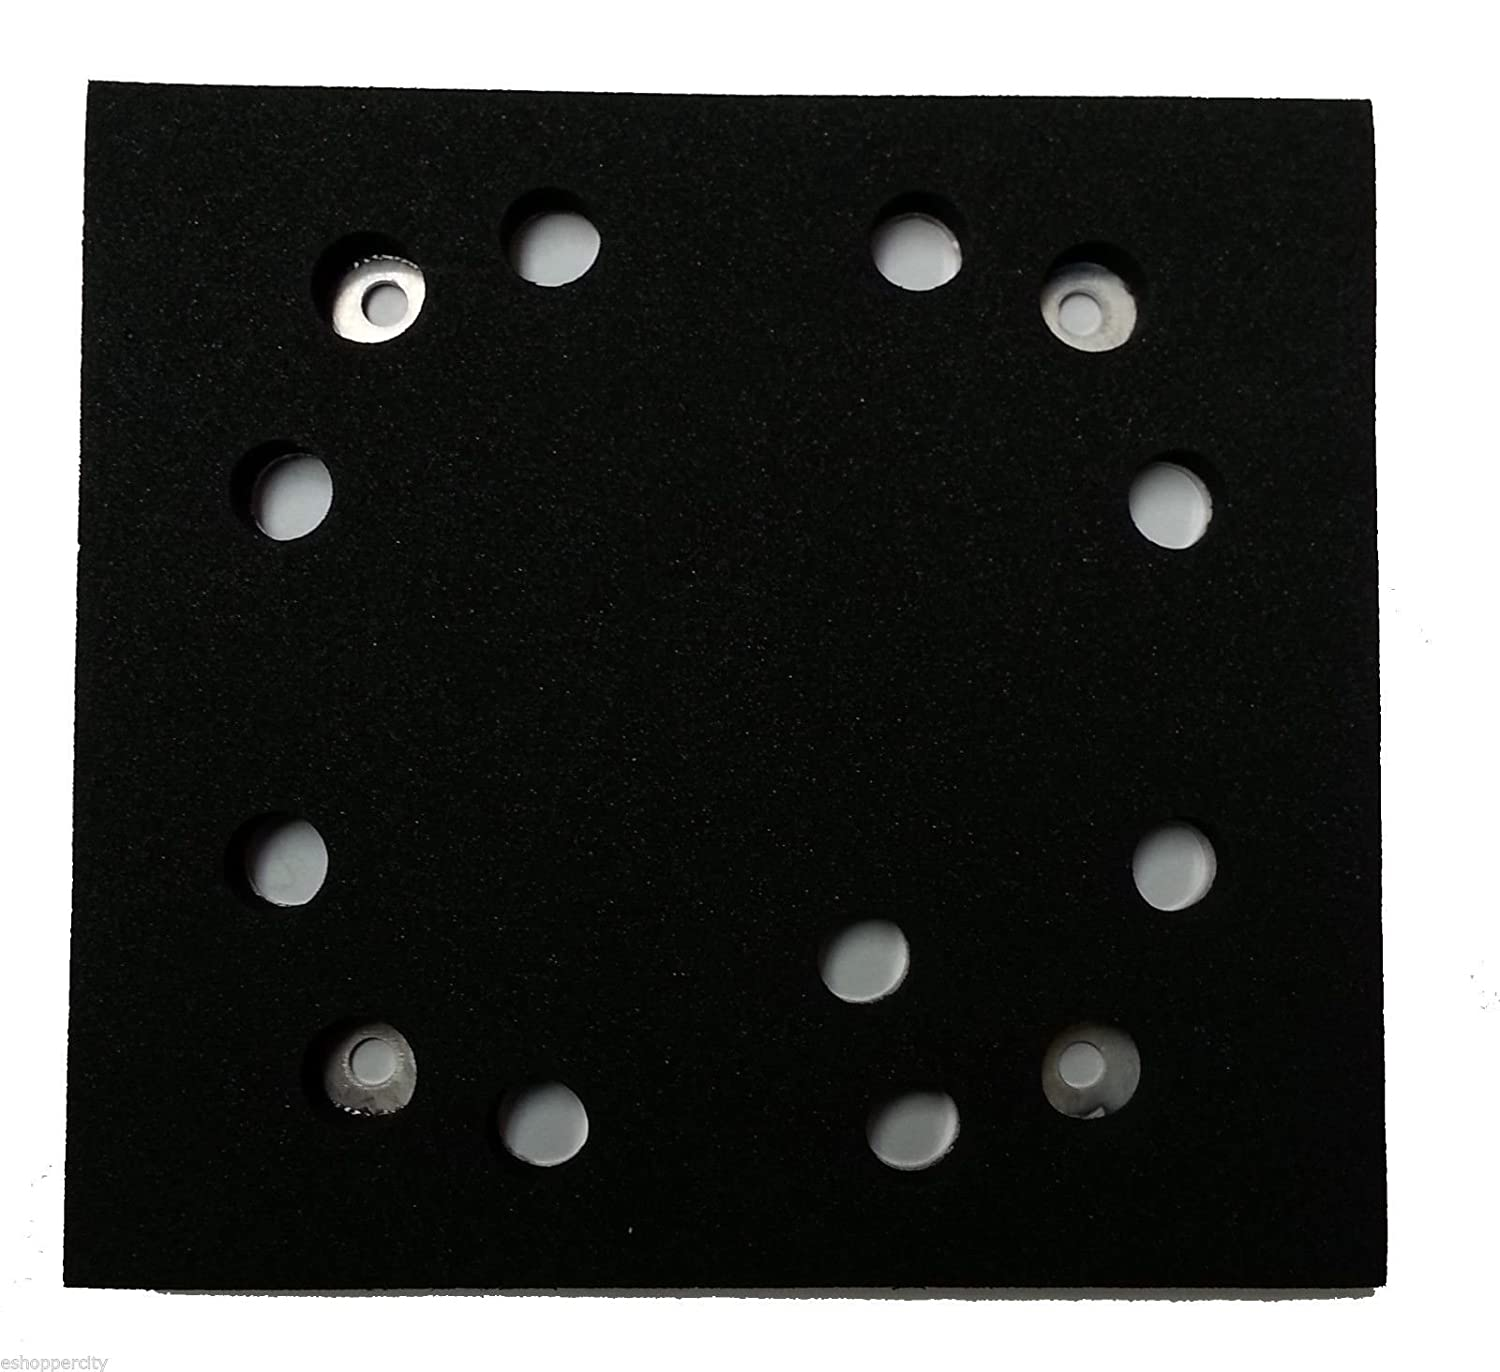 Mutitoolpro Replacement 1/4 Sheet Sander Pad / Backing Plate replaces Dewalt 151284-00 & 151284-00SV (Pack of 2)